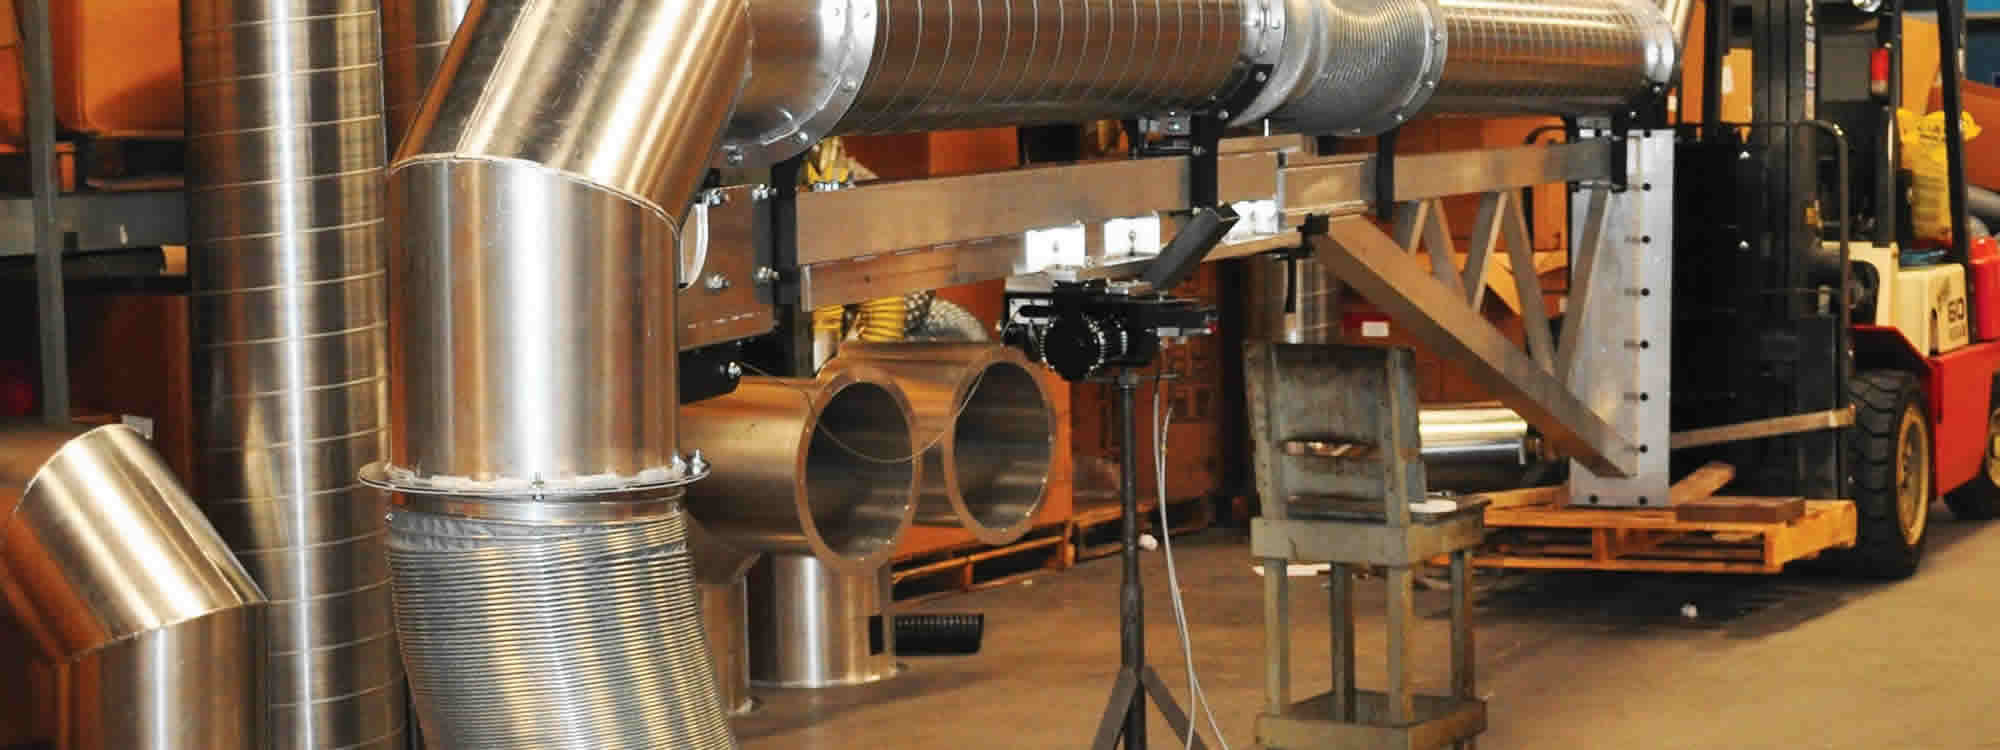 Get Air Distribution systems from Therm Air Sales of Fargo, North Dakota.